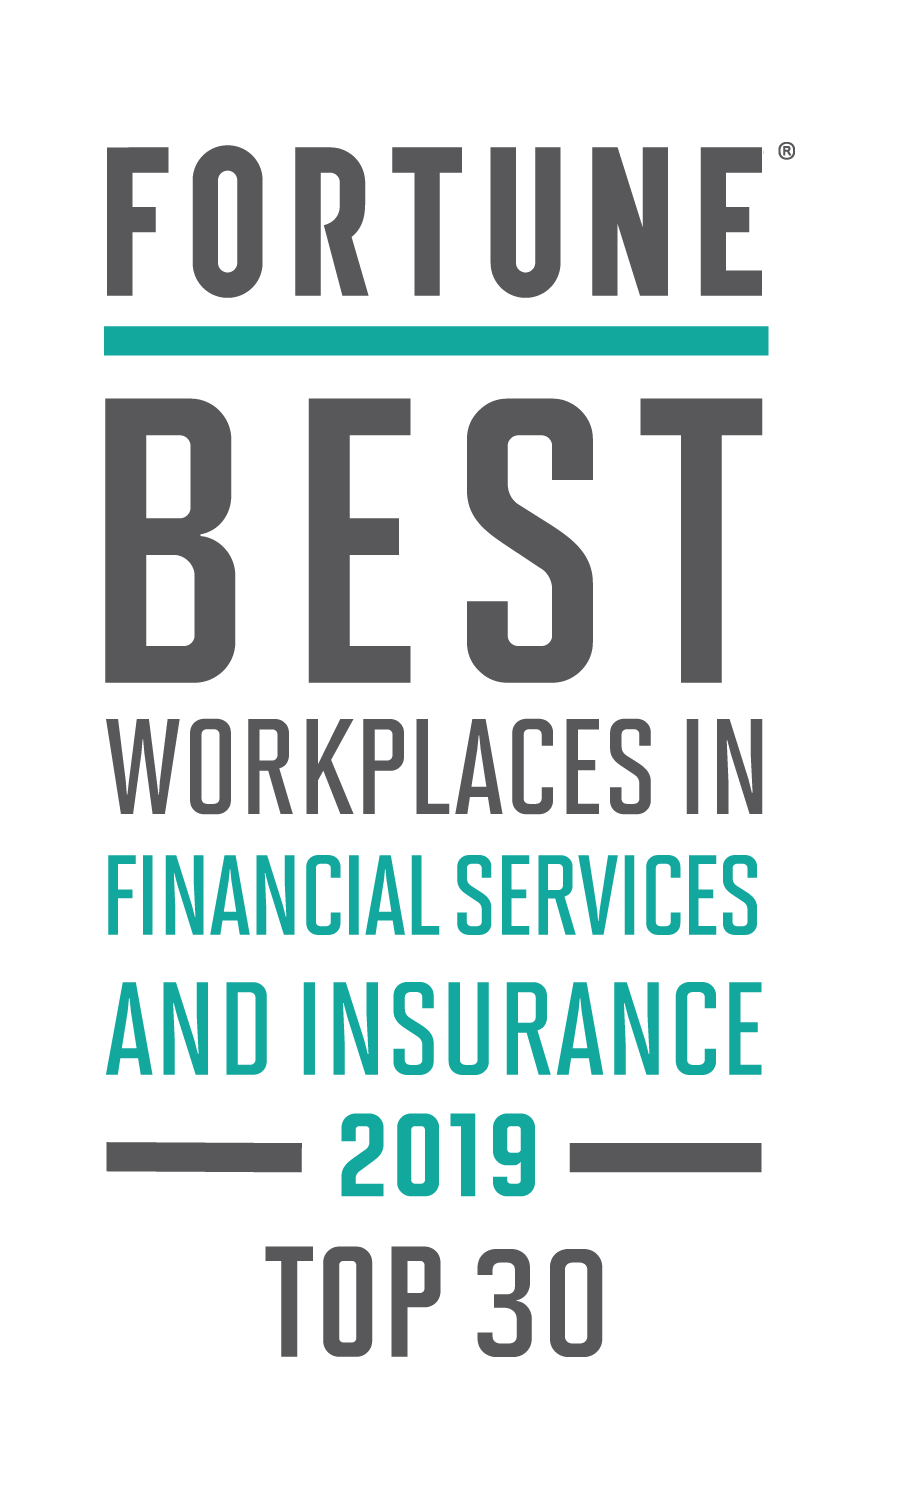 Fortune Best Workplaces in financial services